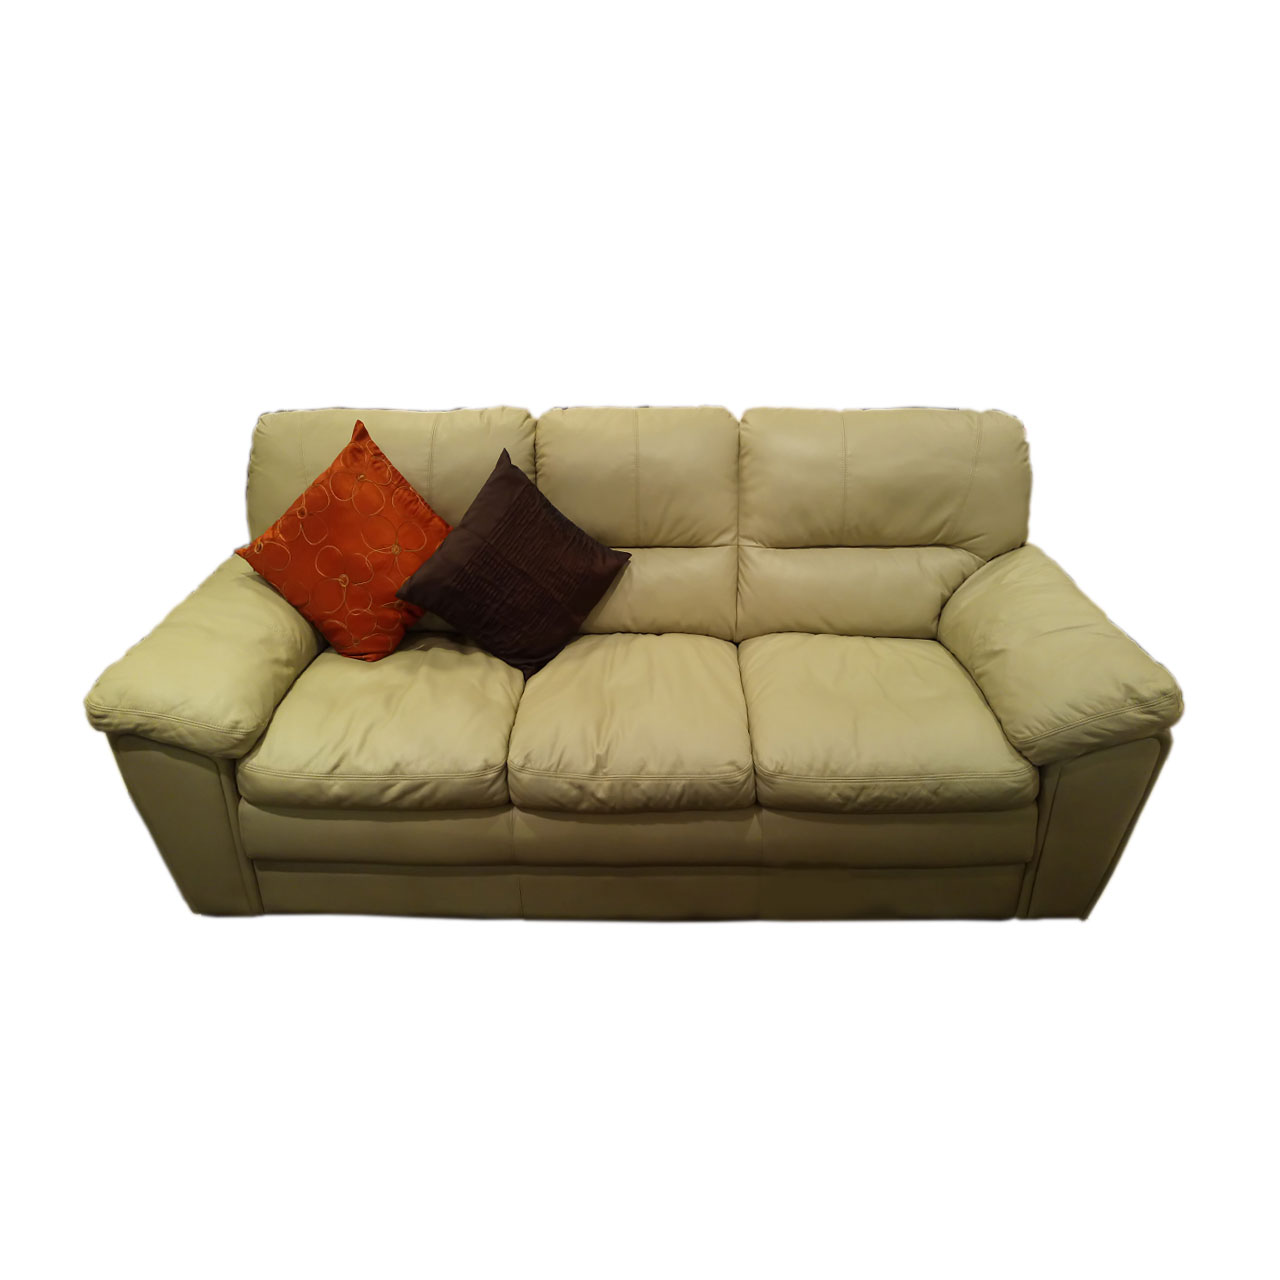 sabrina sofa how to make a bed with storage furniture store manila philippines urban